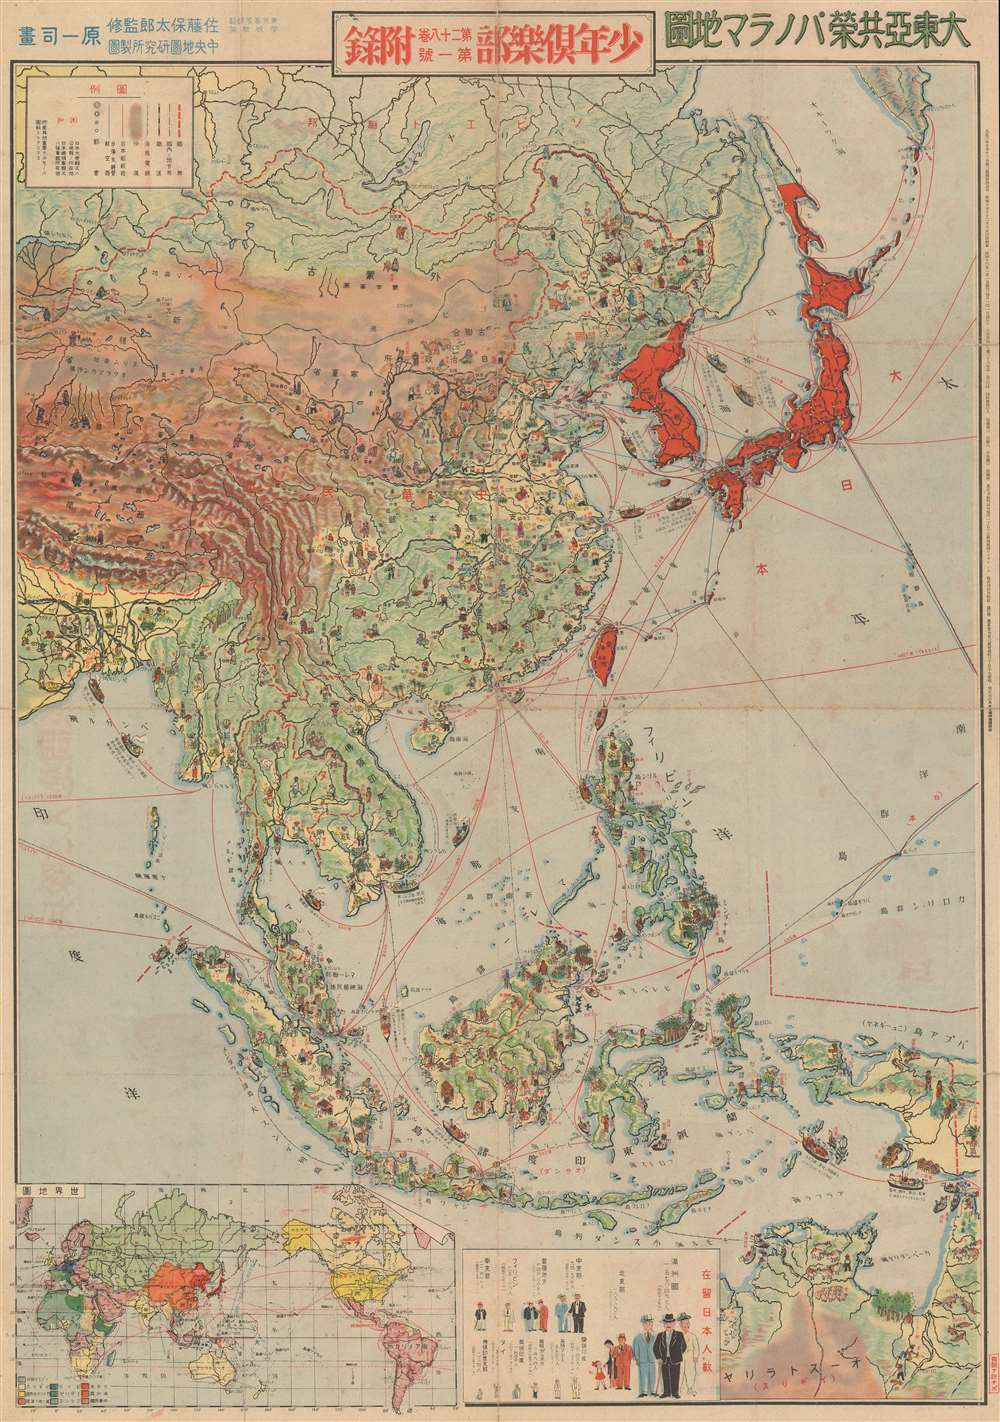 Greater East Asia Co Prosperity Panorama Map. / 大東亞共榮パノラマ地圖